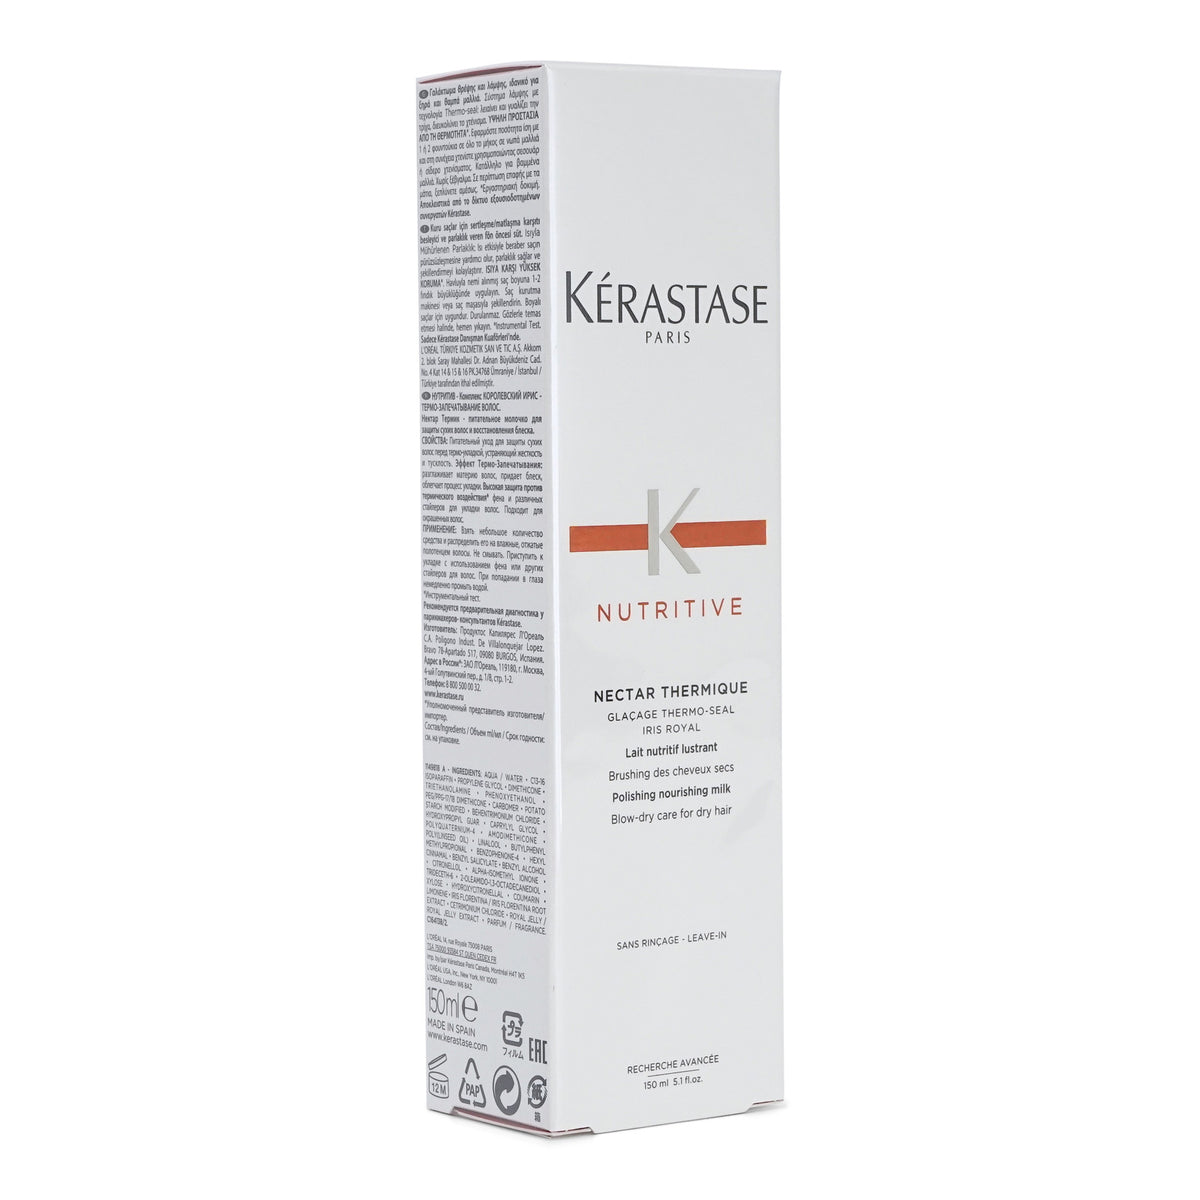 Kerastase Nutritive Nectar Thermique, leave-in thermal protectant for dry hair (5.1 oz/150ml) (3/cs)